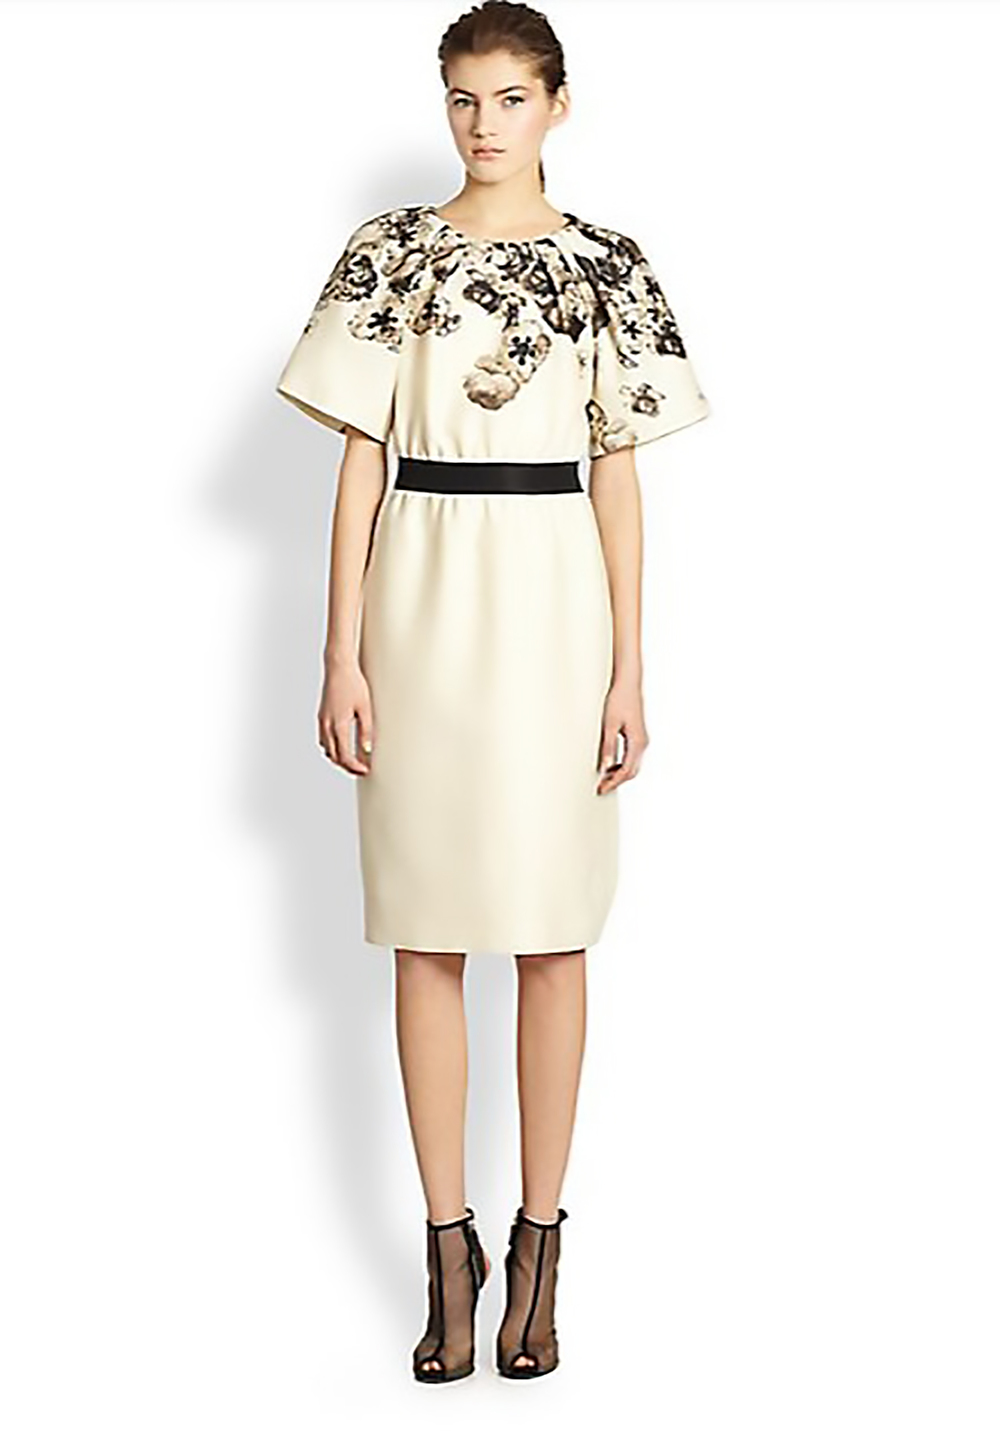 saks fifth avenue giambattista Valli winter florals 1500.jpg